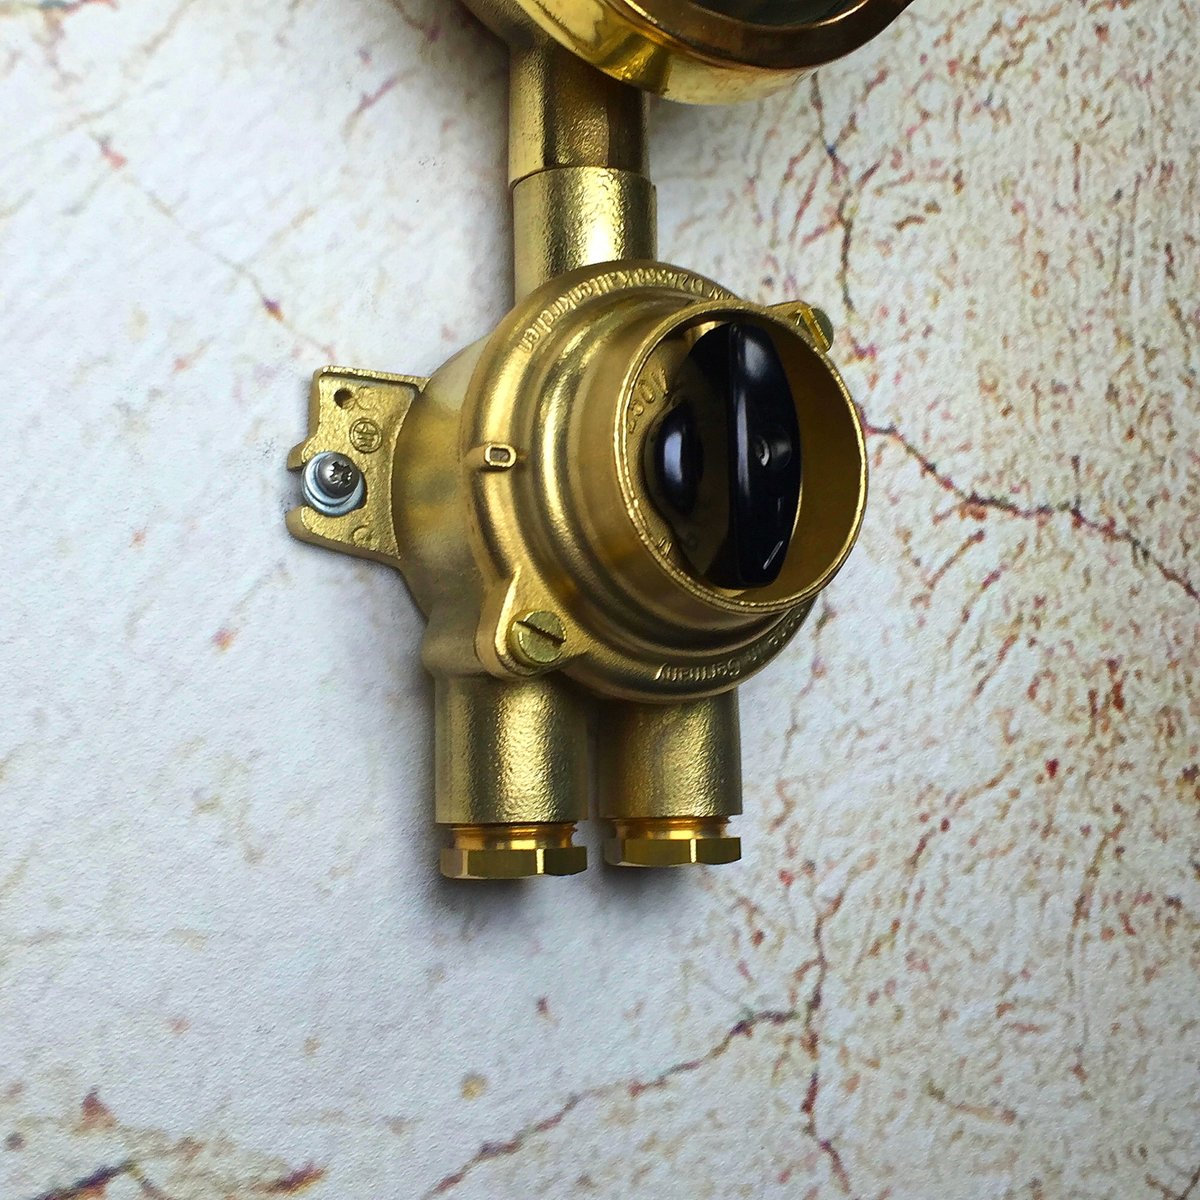 Vintage Industrial Light Switch: Vintage Brass Industrial Wall Light From Wiska, 1970s For